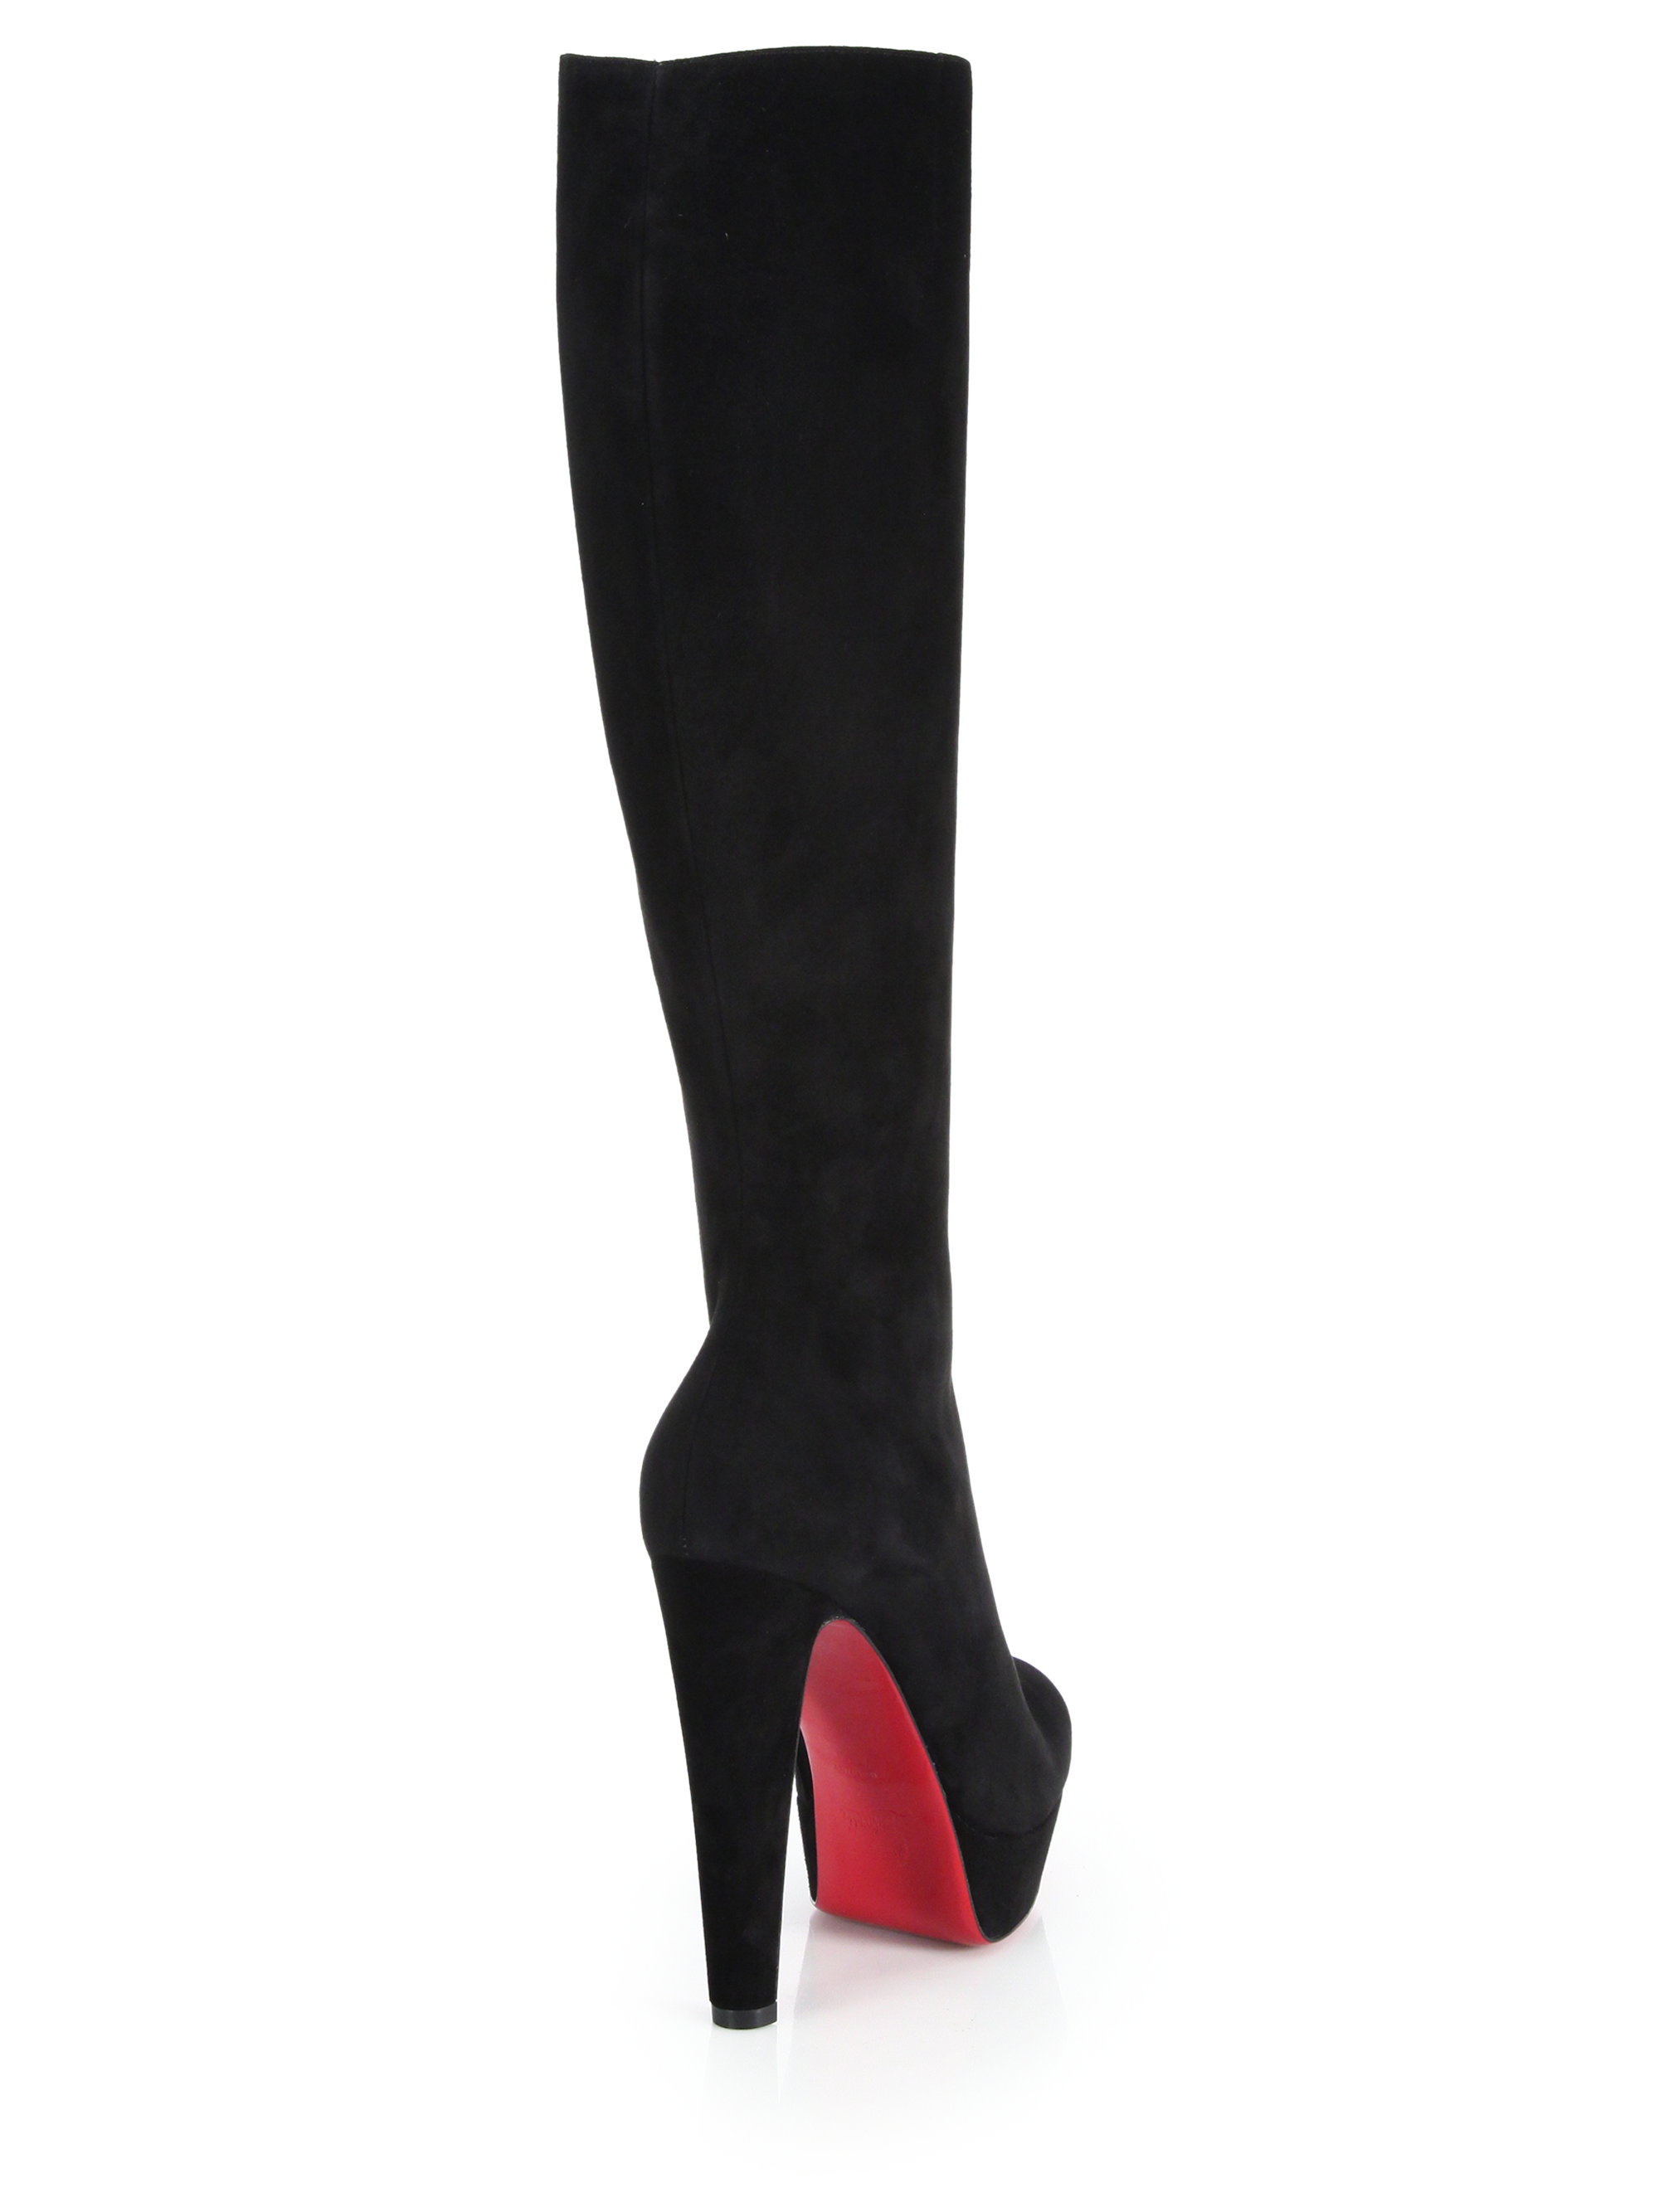 78965315b8f Lyst - Christian Louboutin Lady Suede Knee-high Platform Boots in Black